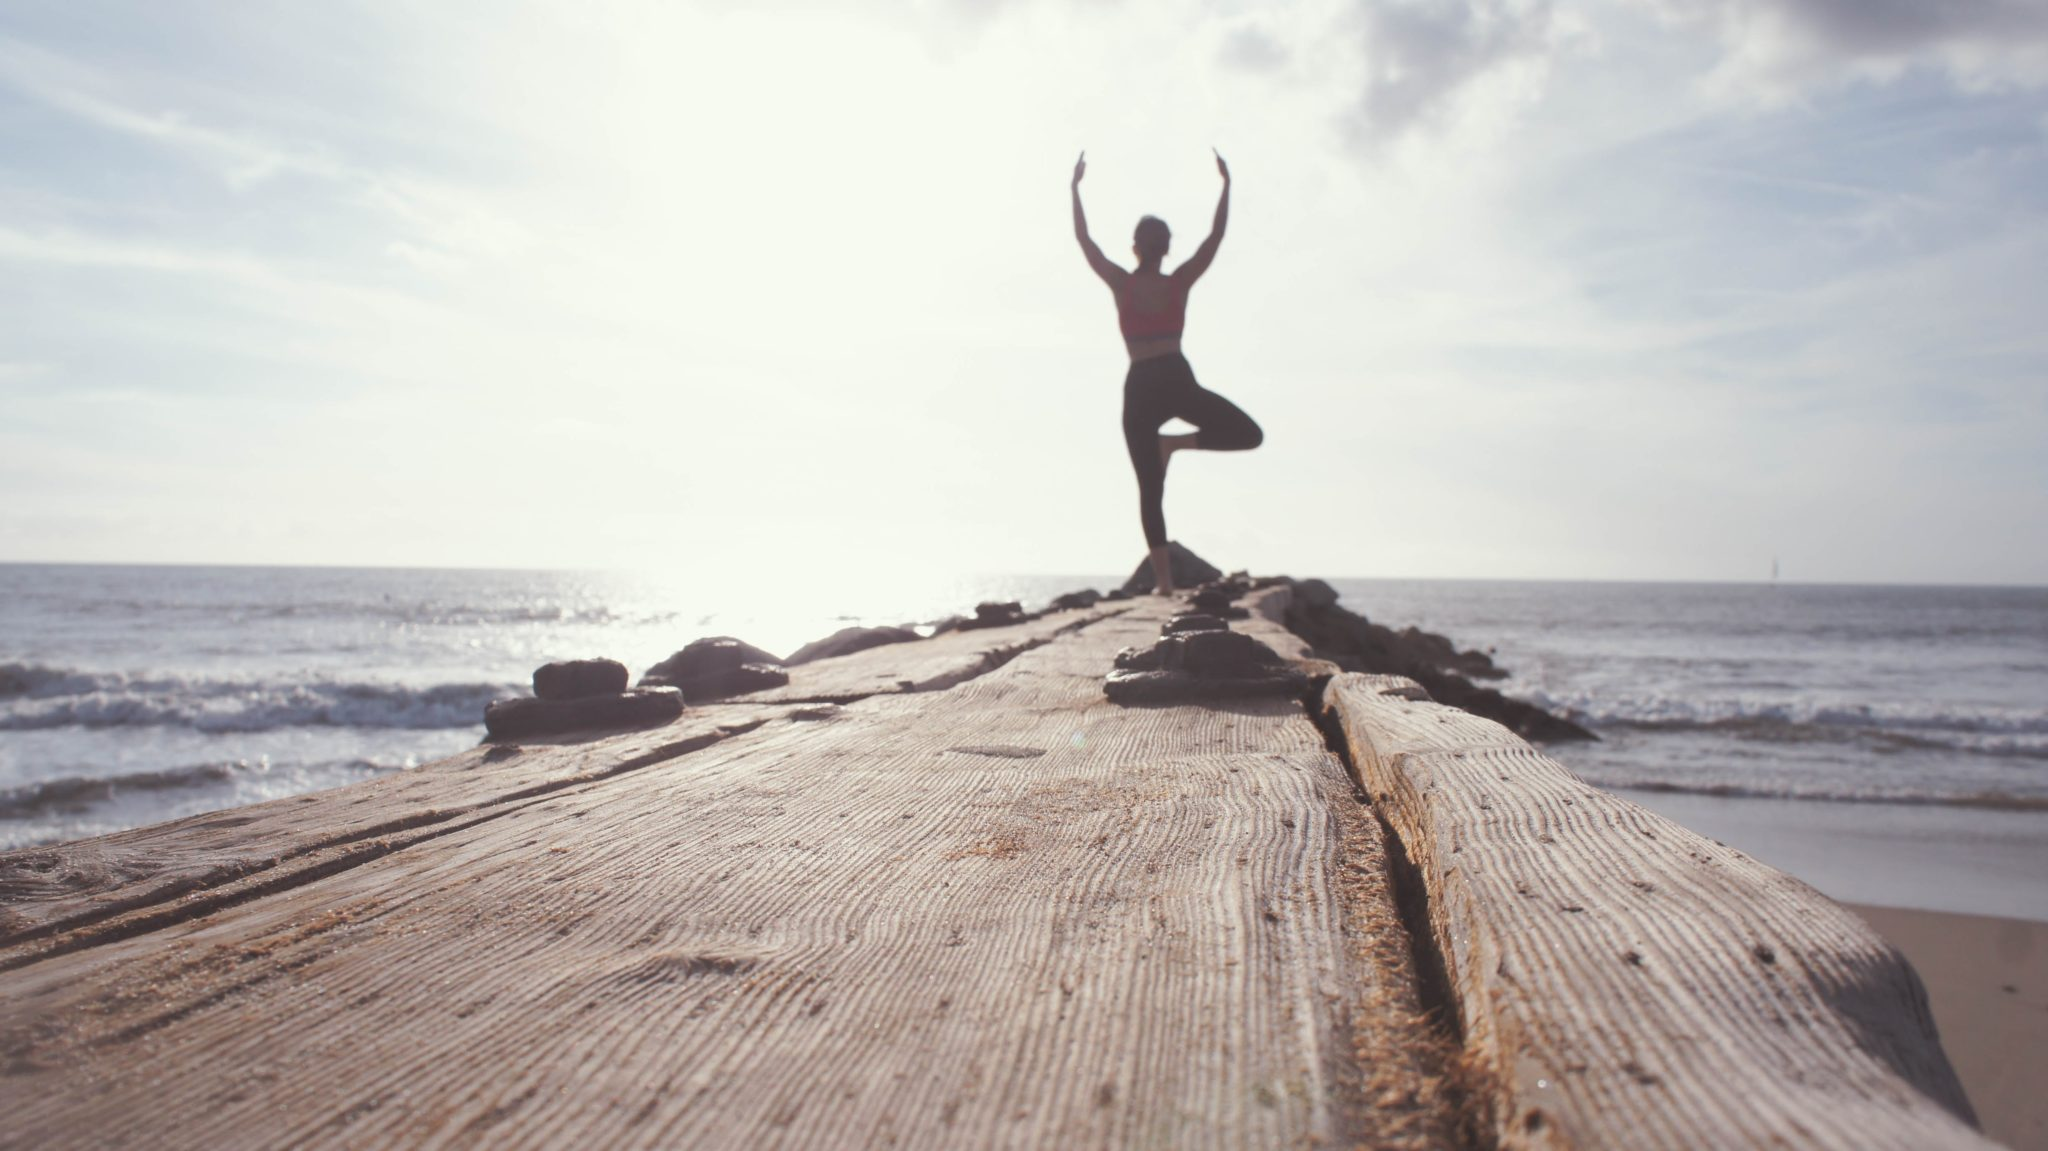 a woman in a yoga pose standing at the end of a wooden pier surrounded by water